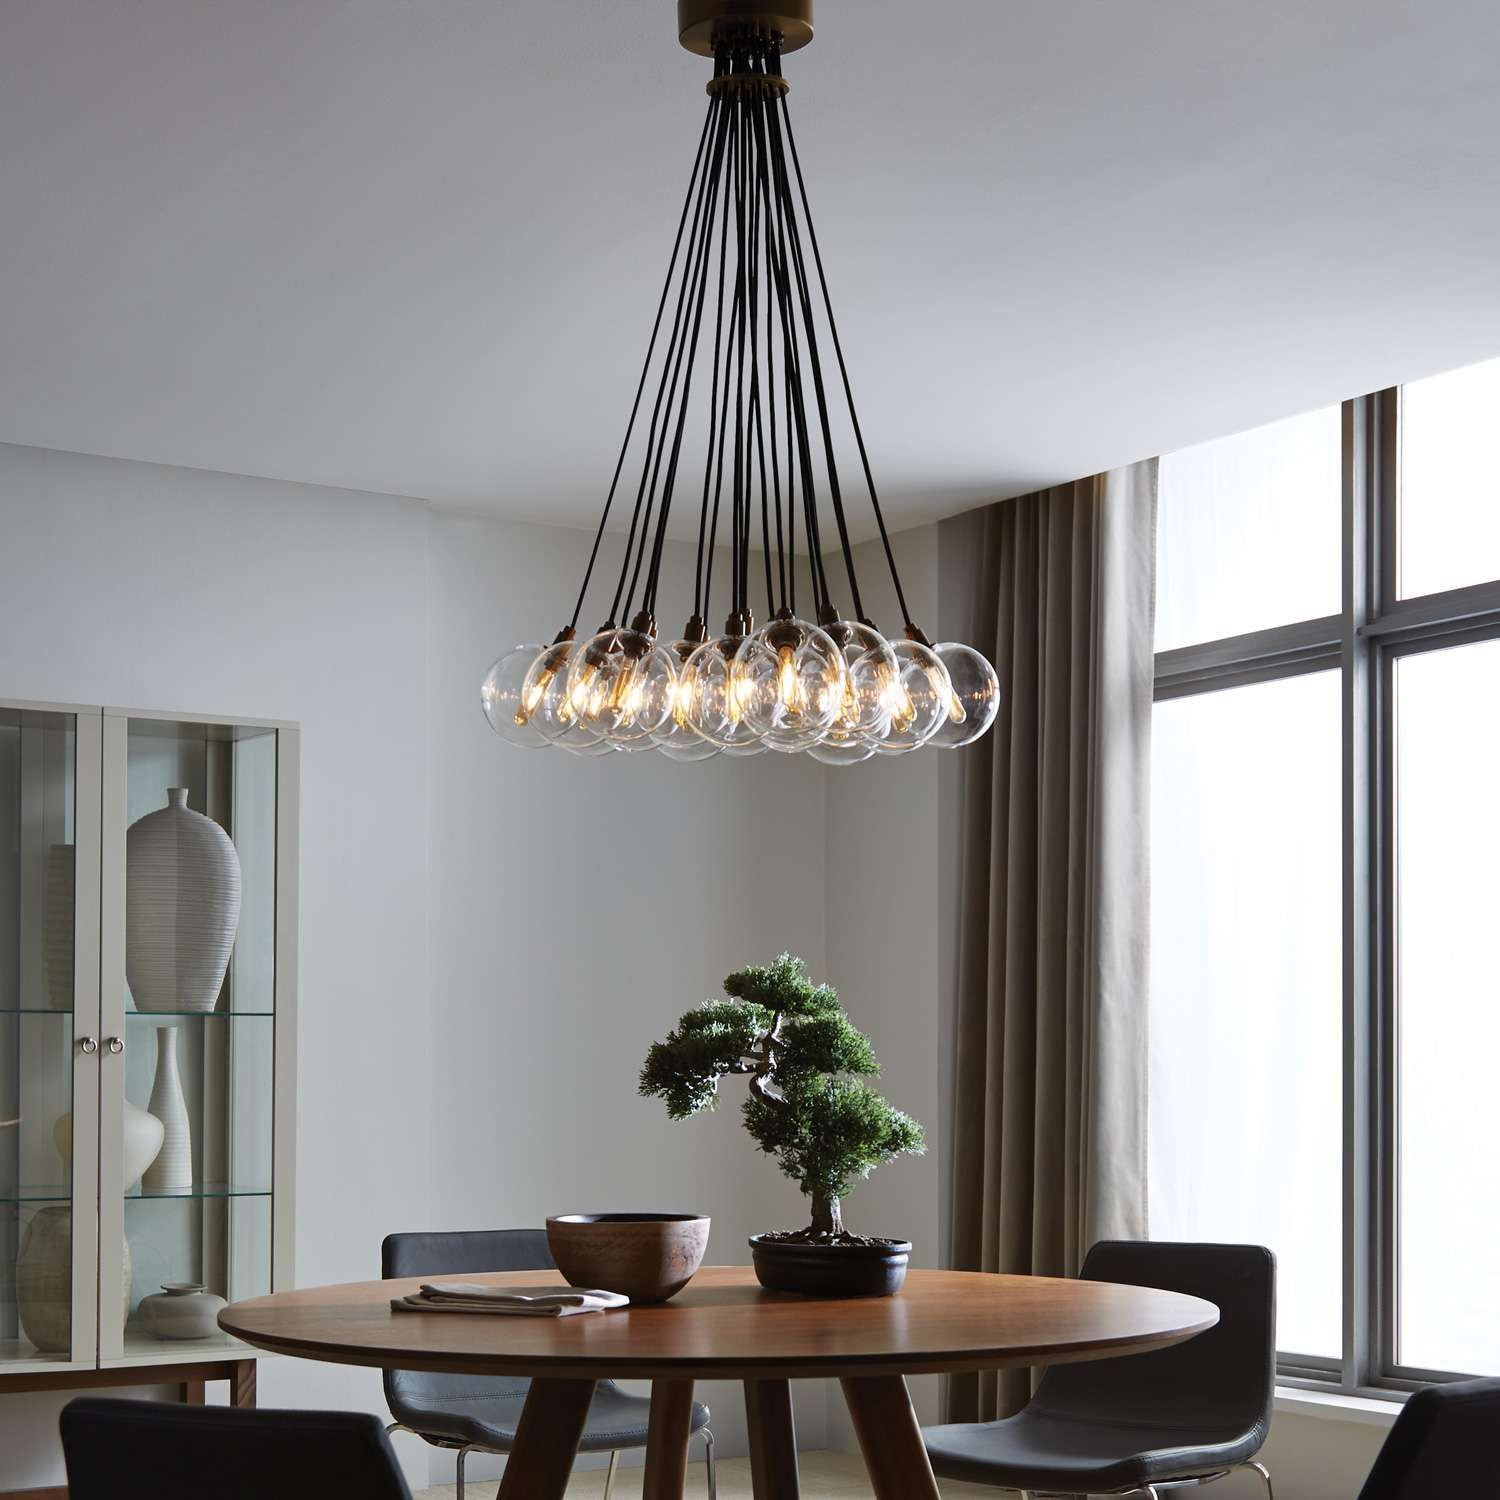 The Gambit 19 Lite Led Multiport Chandelier Family Exudes Undeniable Beauty And Warm Contemporary St Contemporary Light Fixtures Led Chandelier Dining Lighting